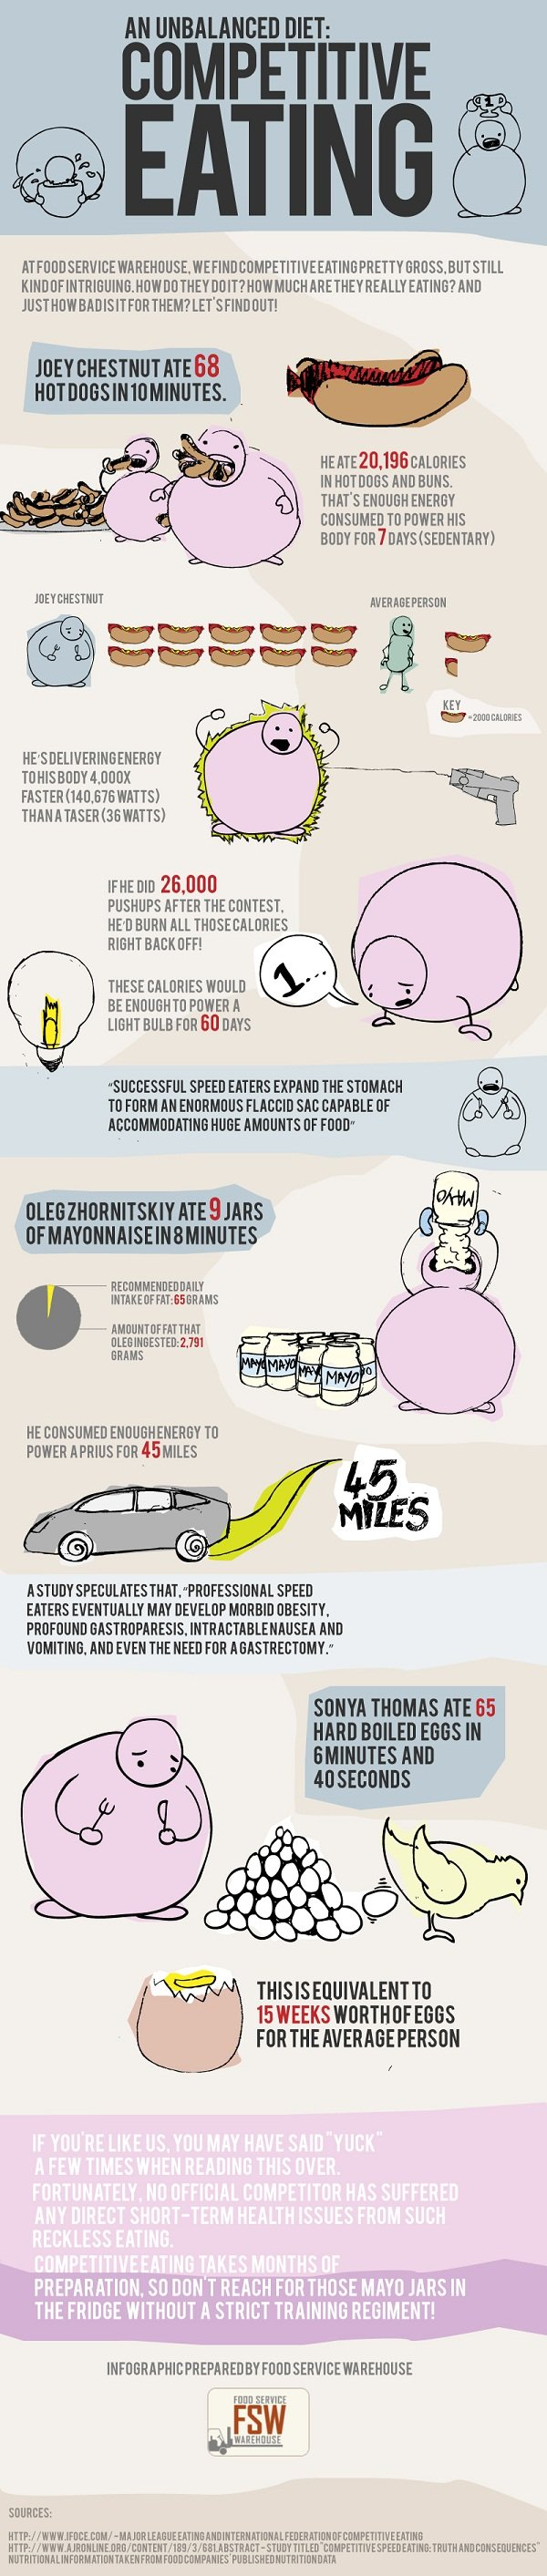 AN unbalanced diet competitive eating #infographic